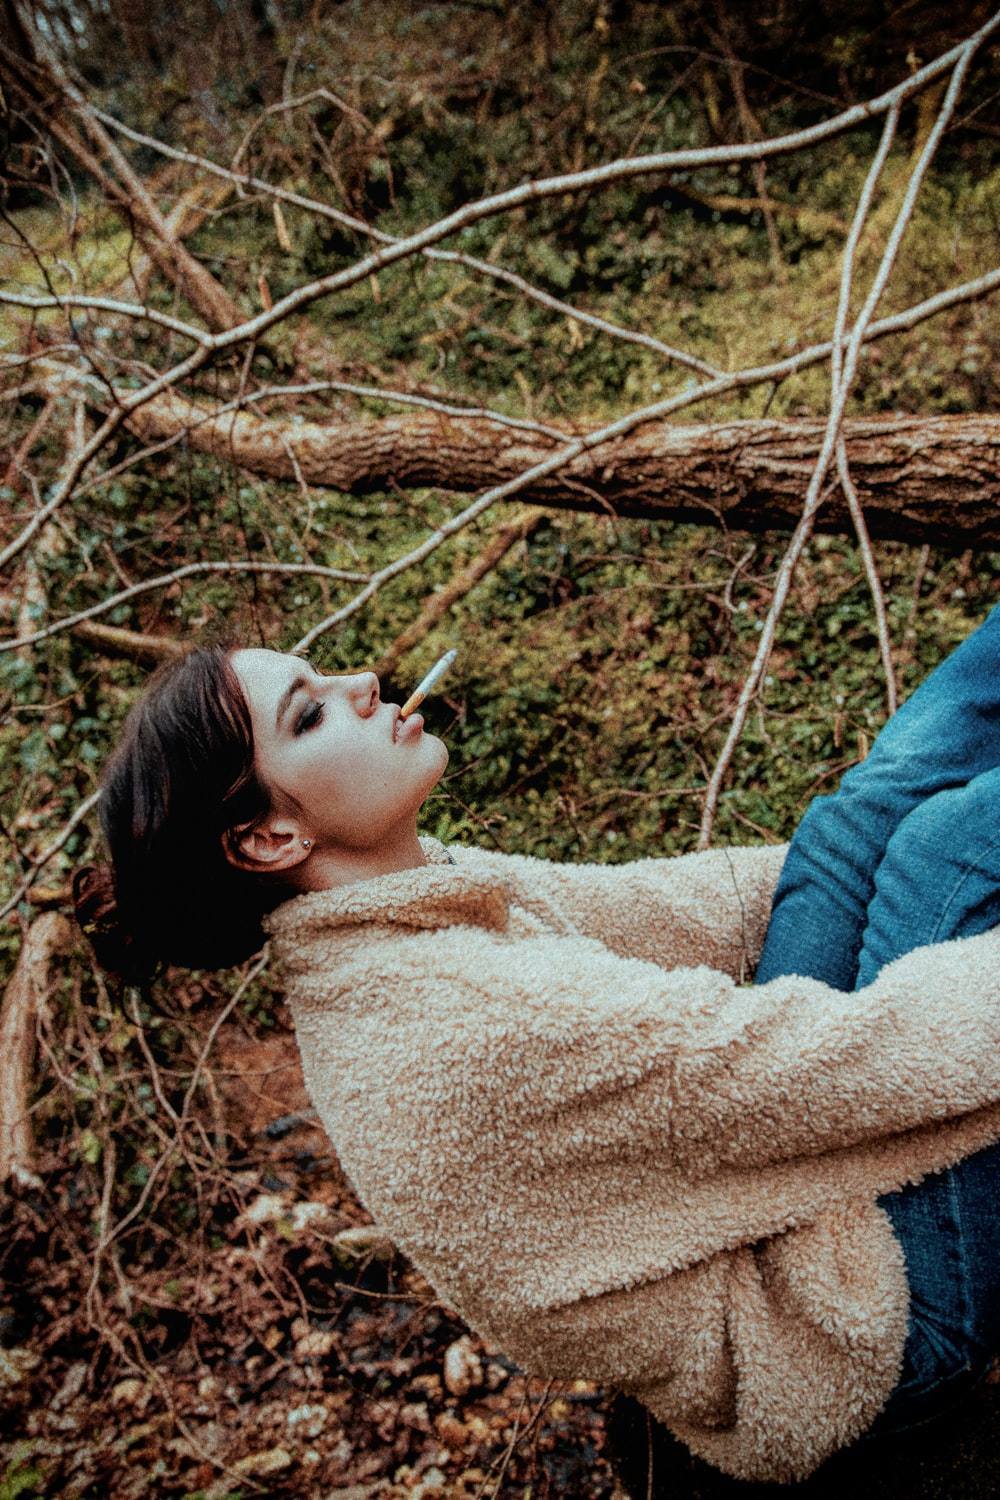 woman in brown sweater lying on brown dried leaves during daytime